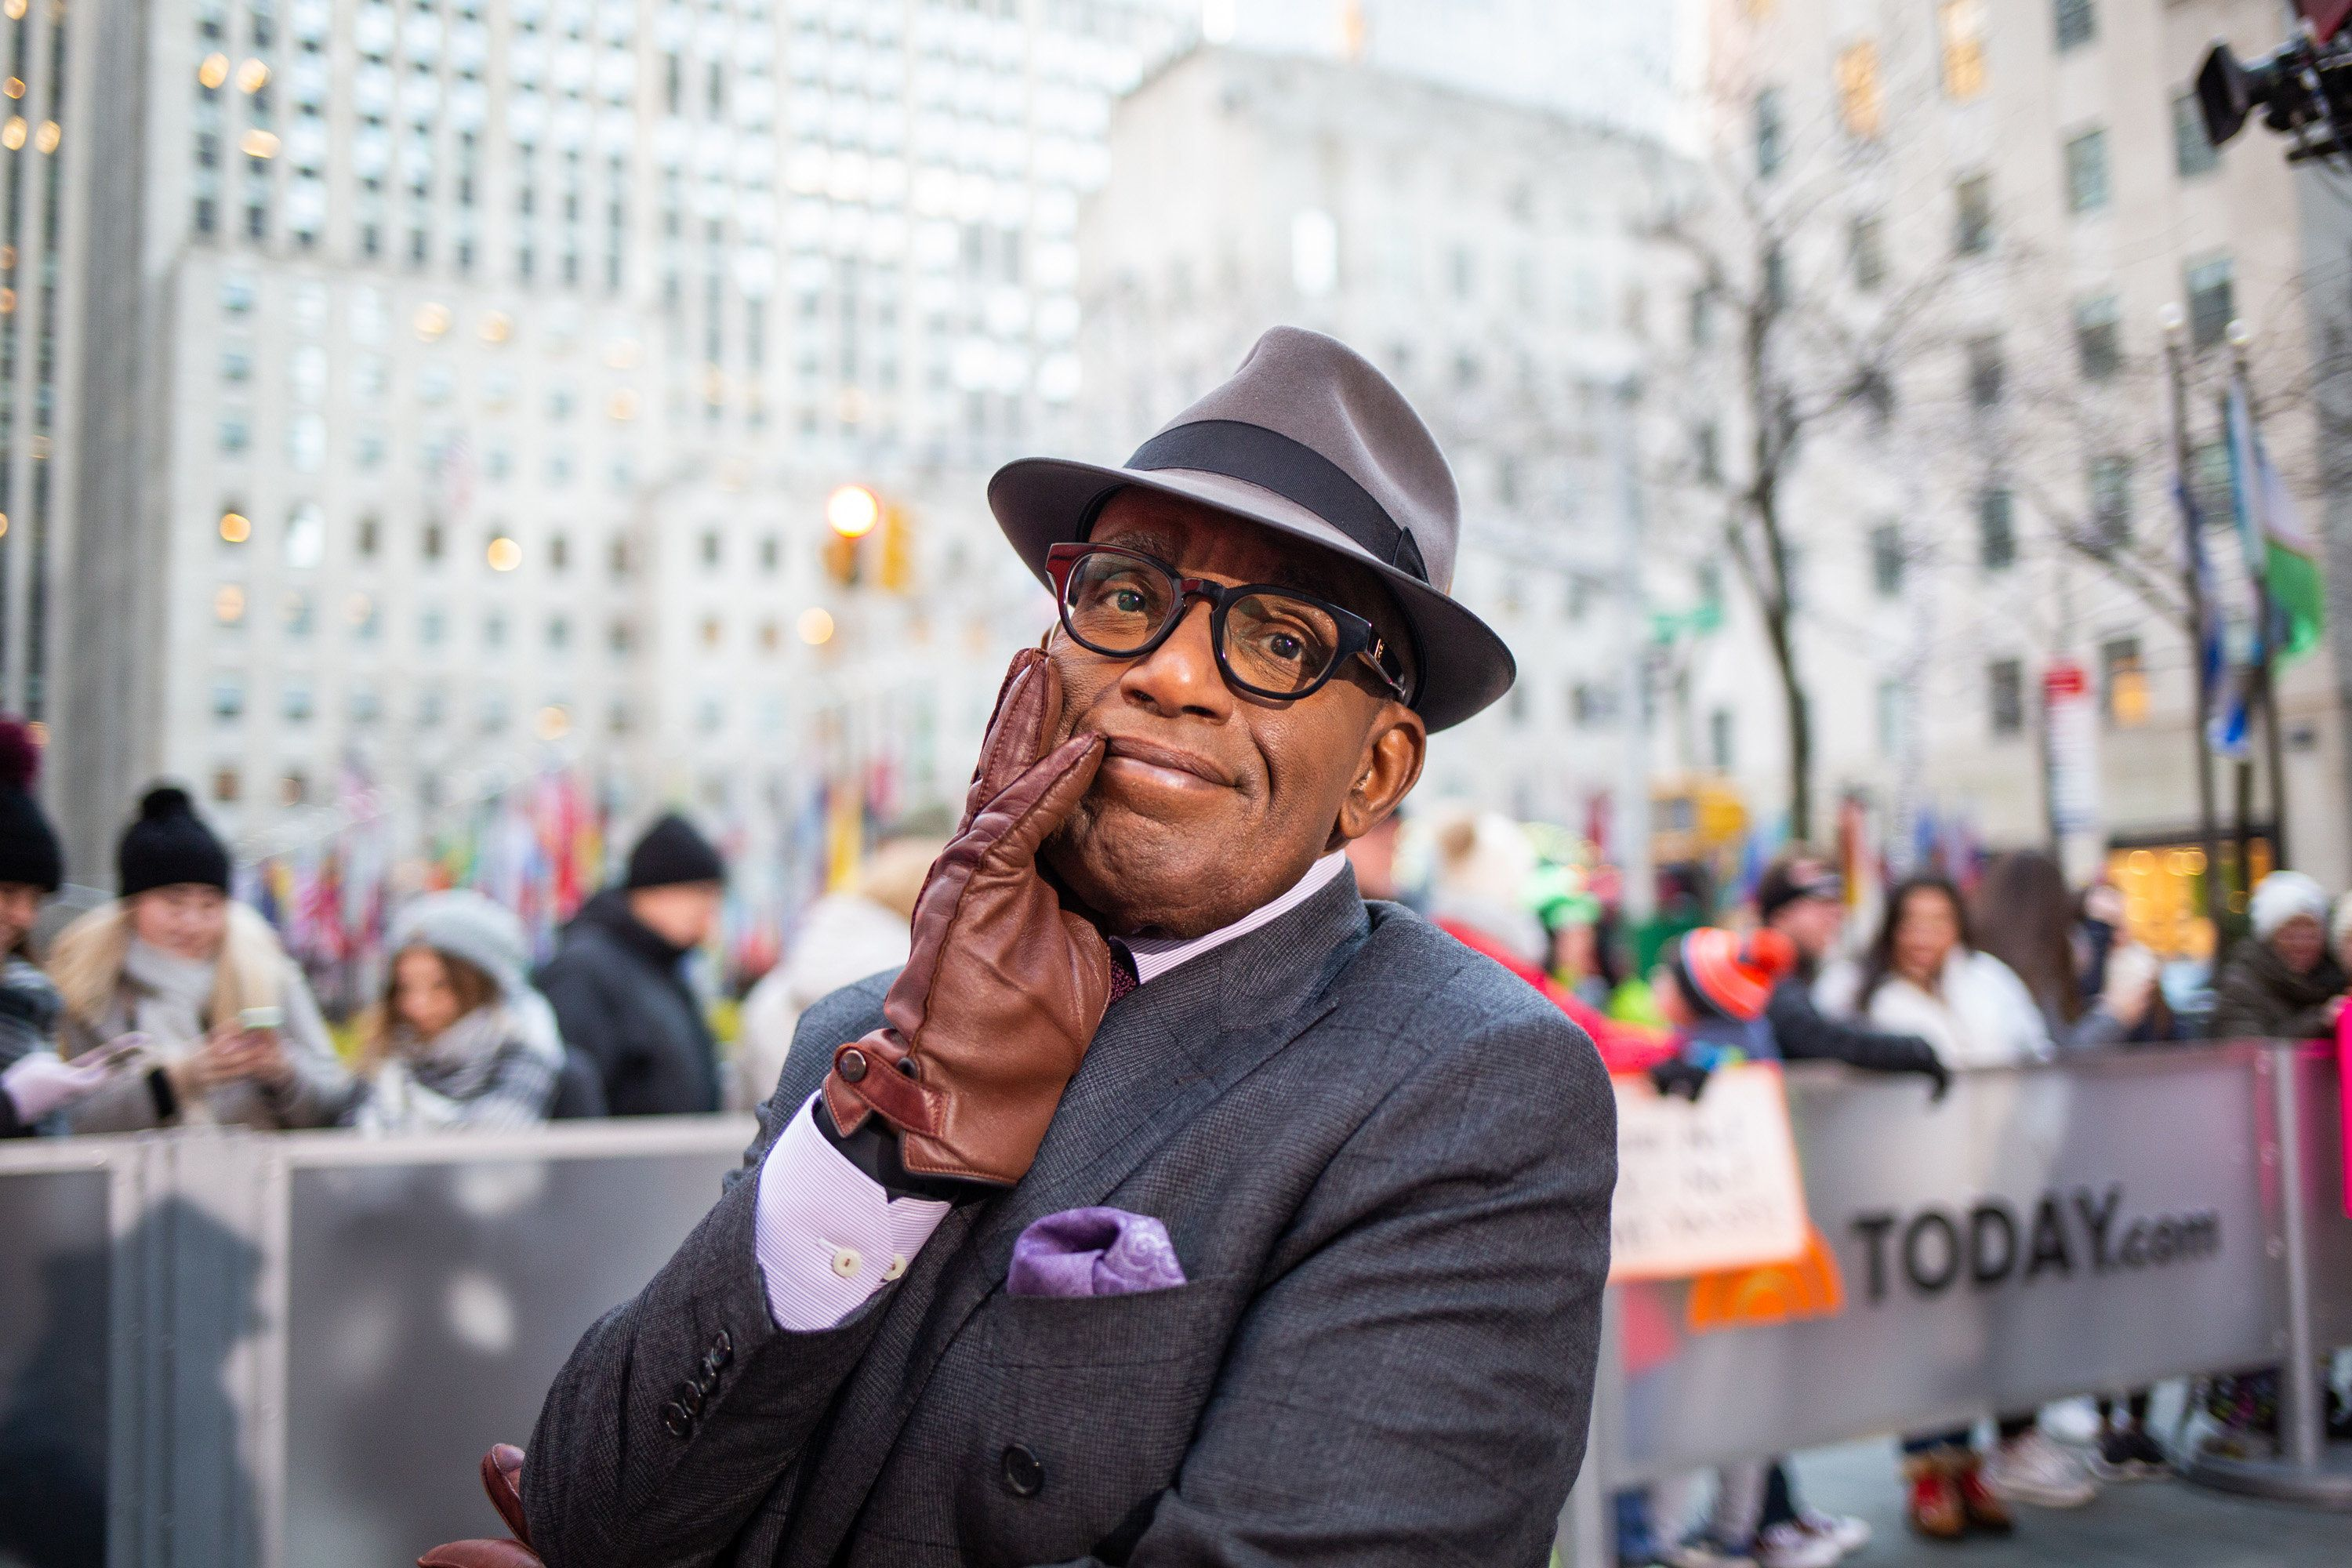 TODAY -- Pictured: Al Roker on Wednesday, January 9, 2019 -- (Photo by: Nathan Congleton/NBC/NBCU Photo Bank via Getty Images)